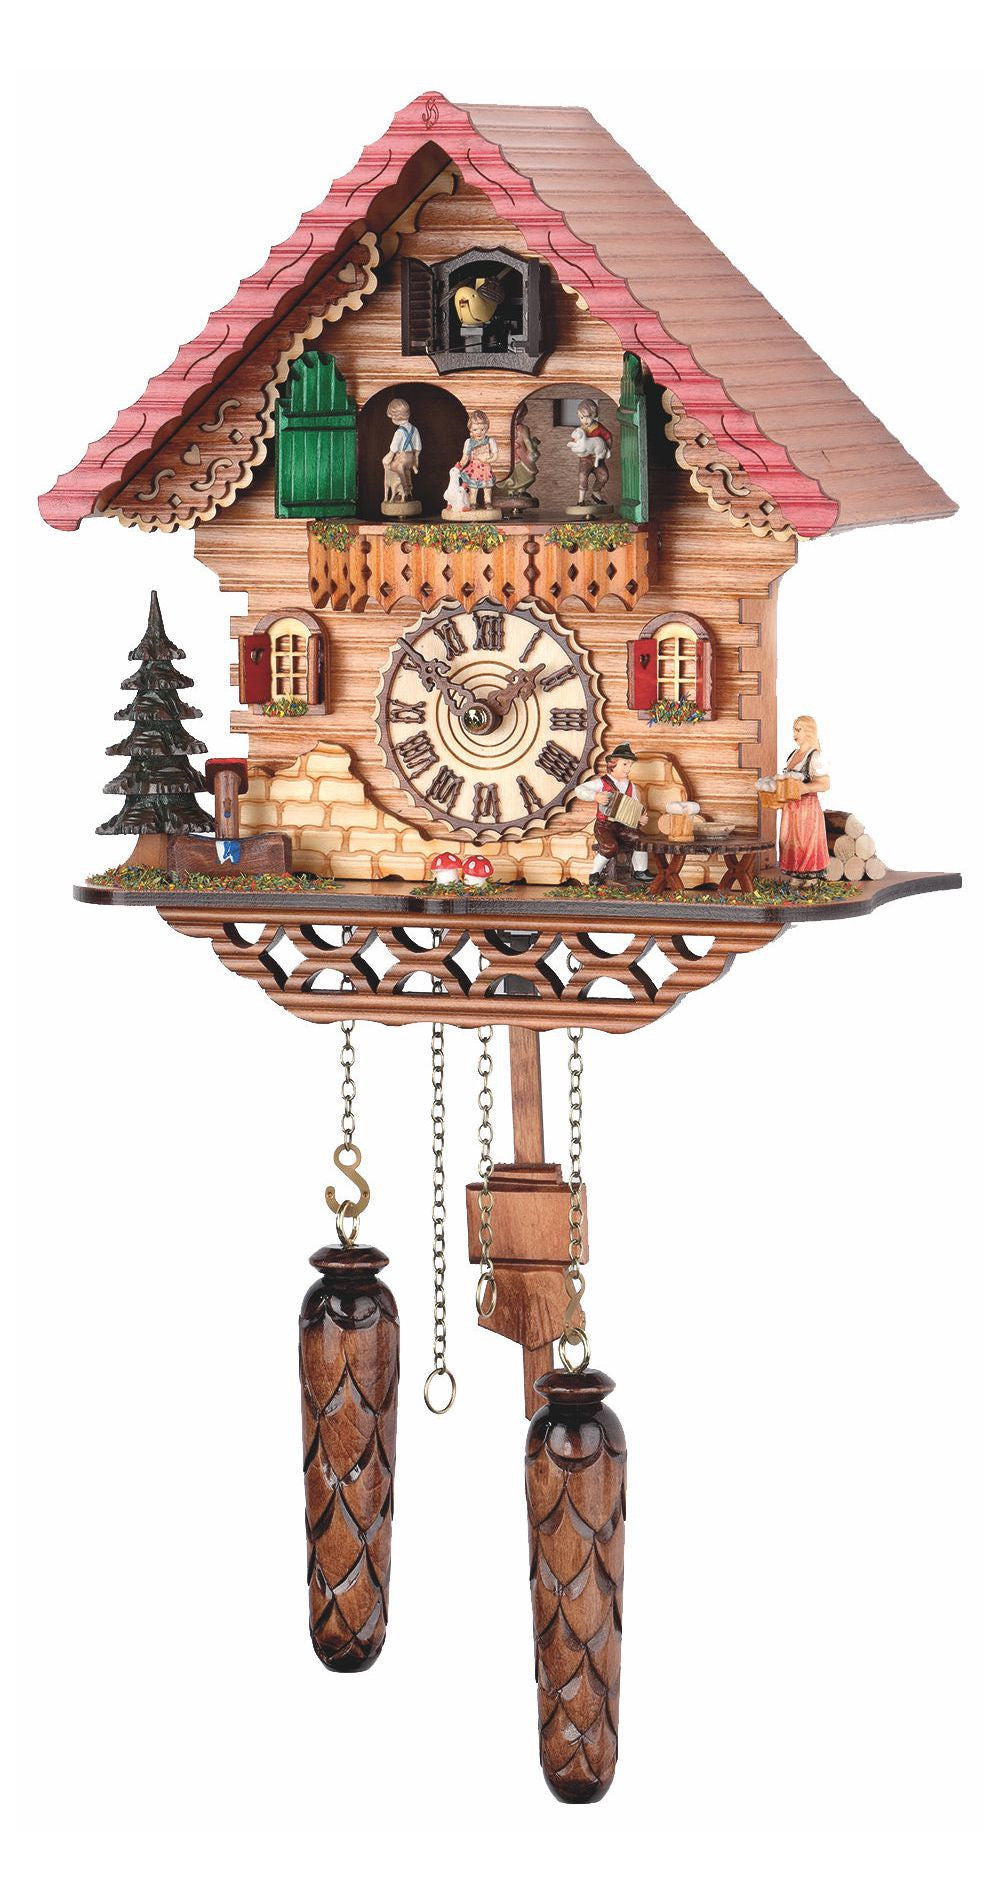 Quartz Cuckoo Clock Black Forest House Moving Dancers with Music - Cuckoo Clock Meister